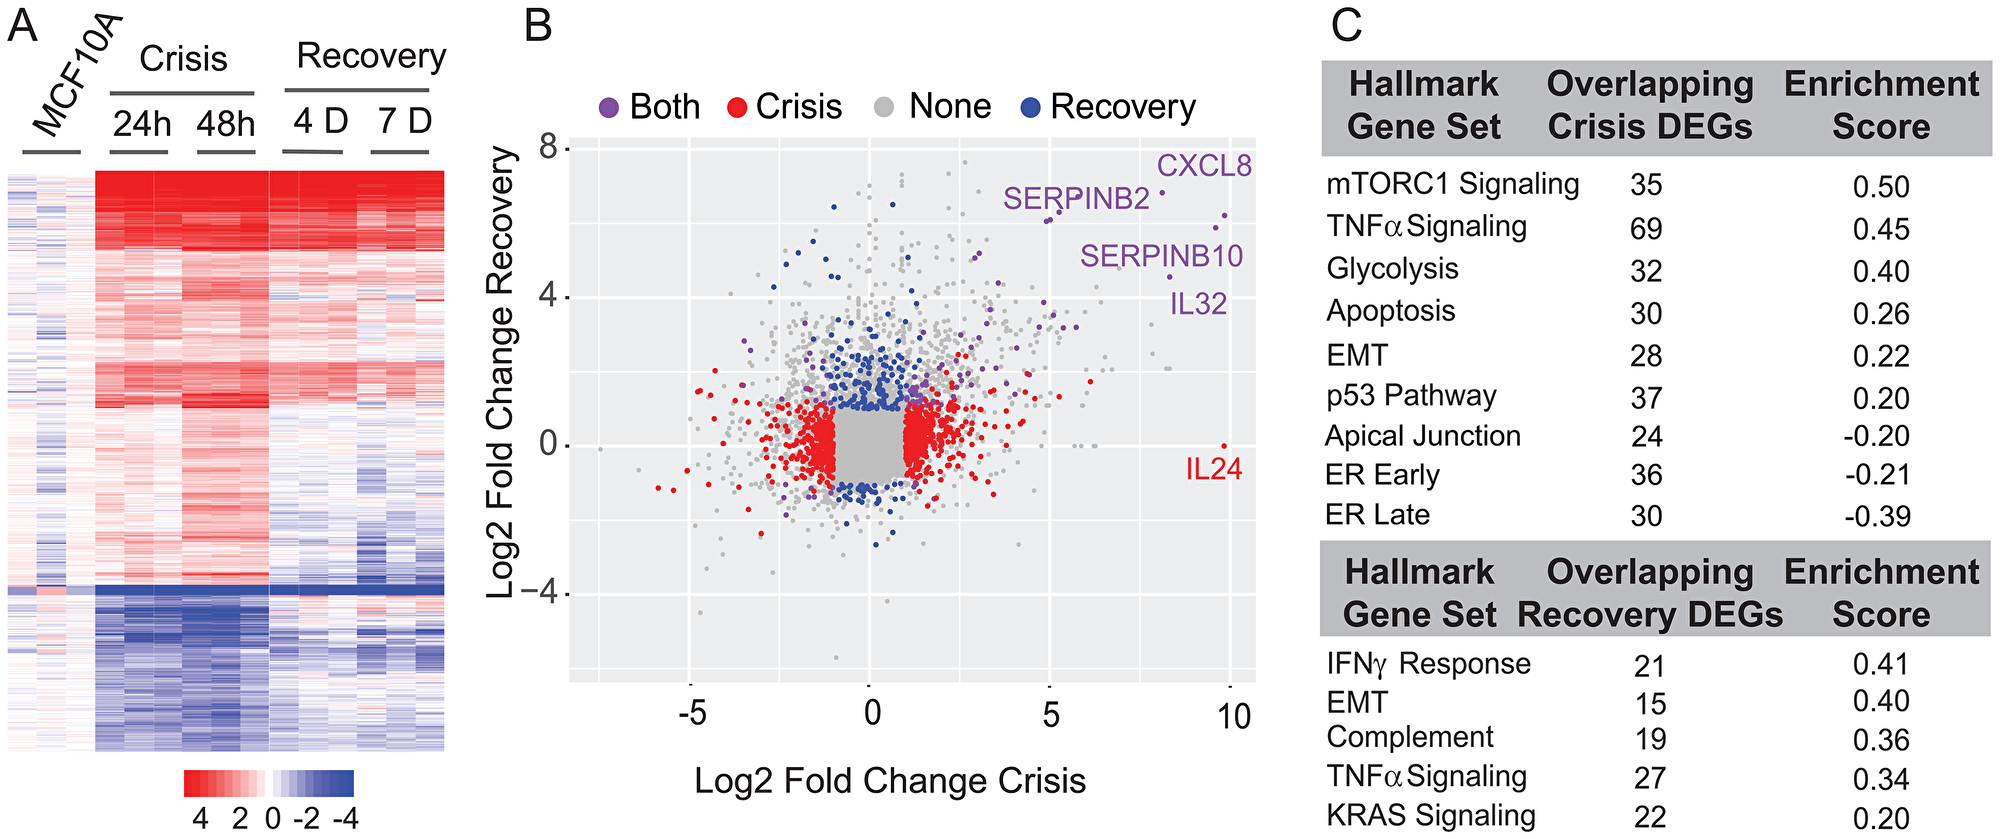 Differential expression and pathway analysis of RNA-Seq shows changes in key regulatory pathways involved in cell proliferation, metabolism, cell cycle control, ER (estrogen response), and EMT.